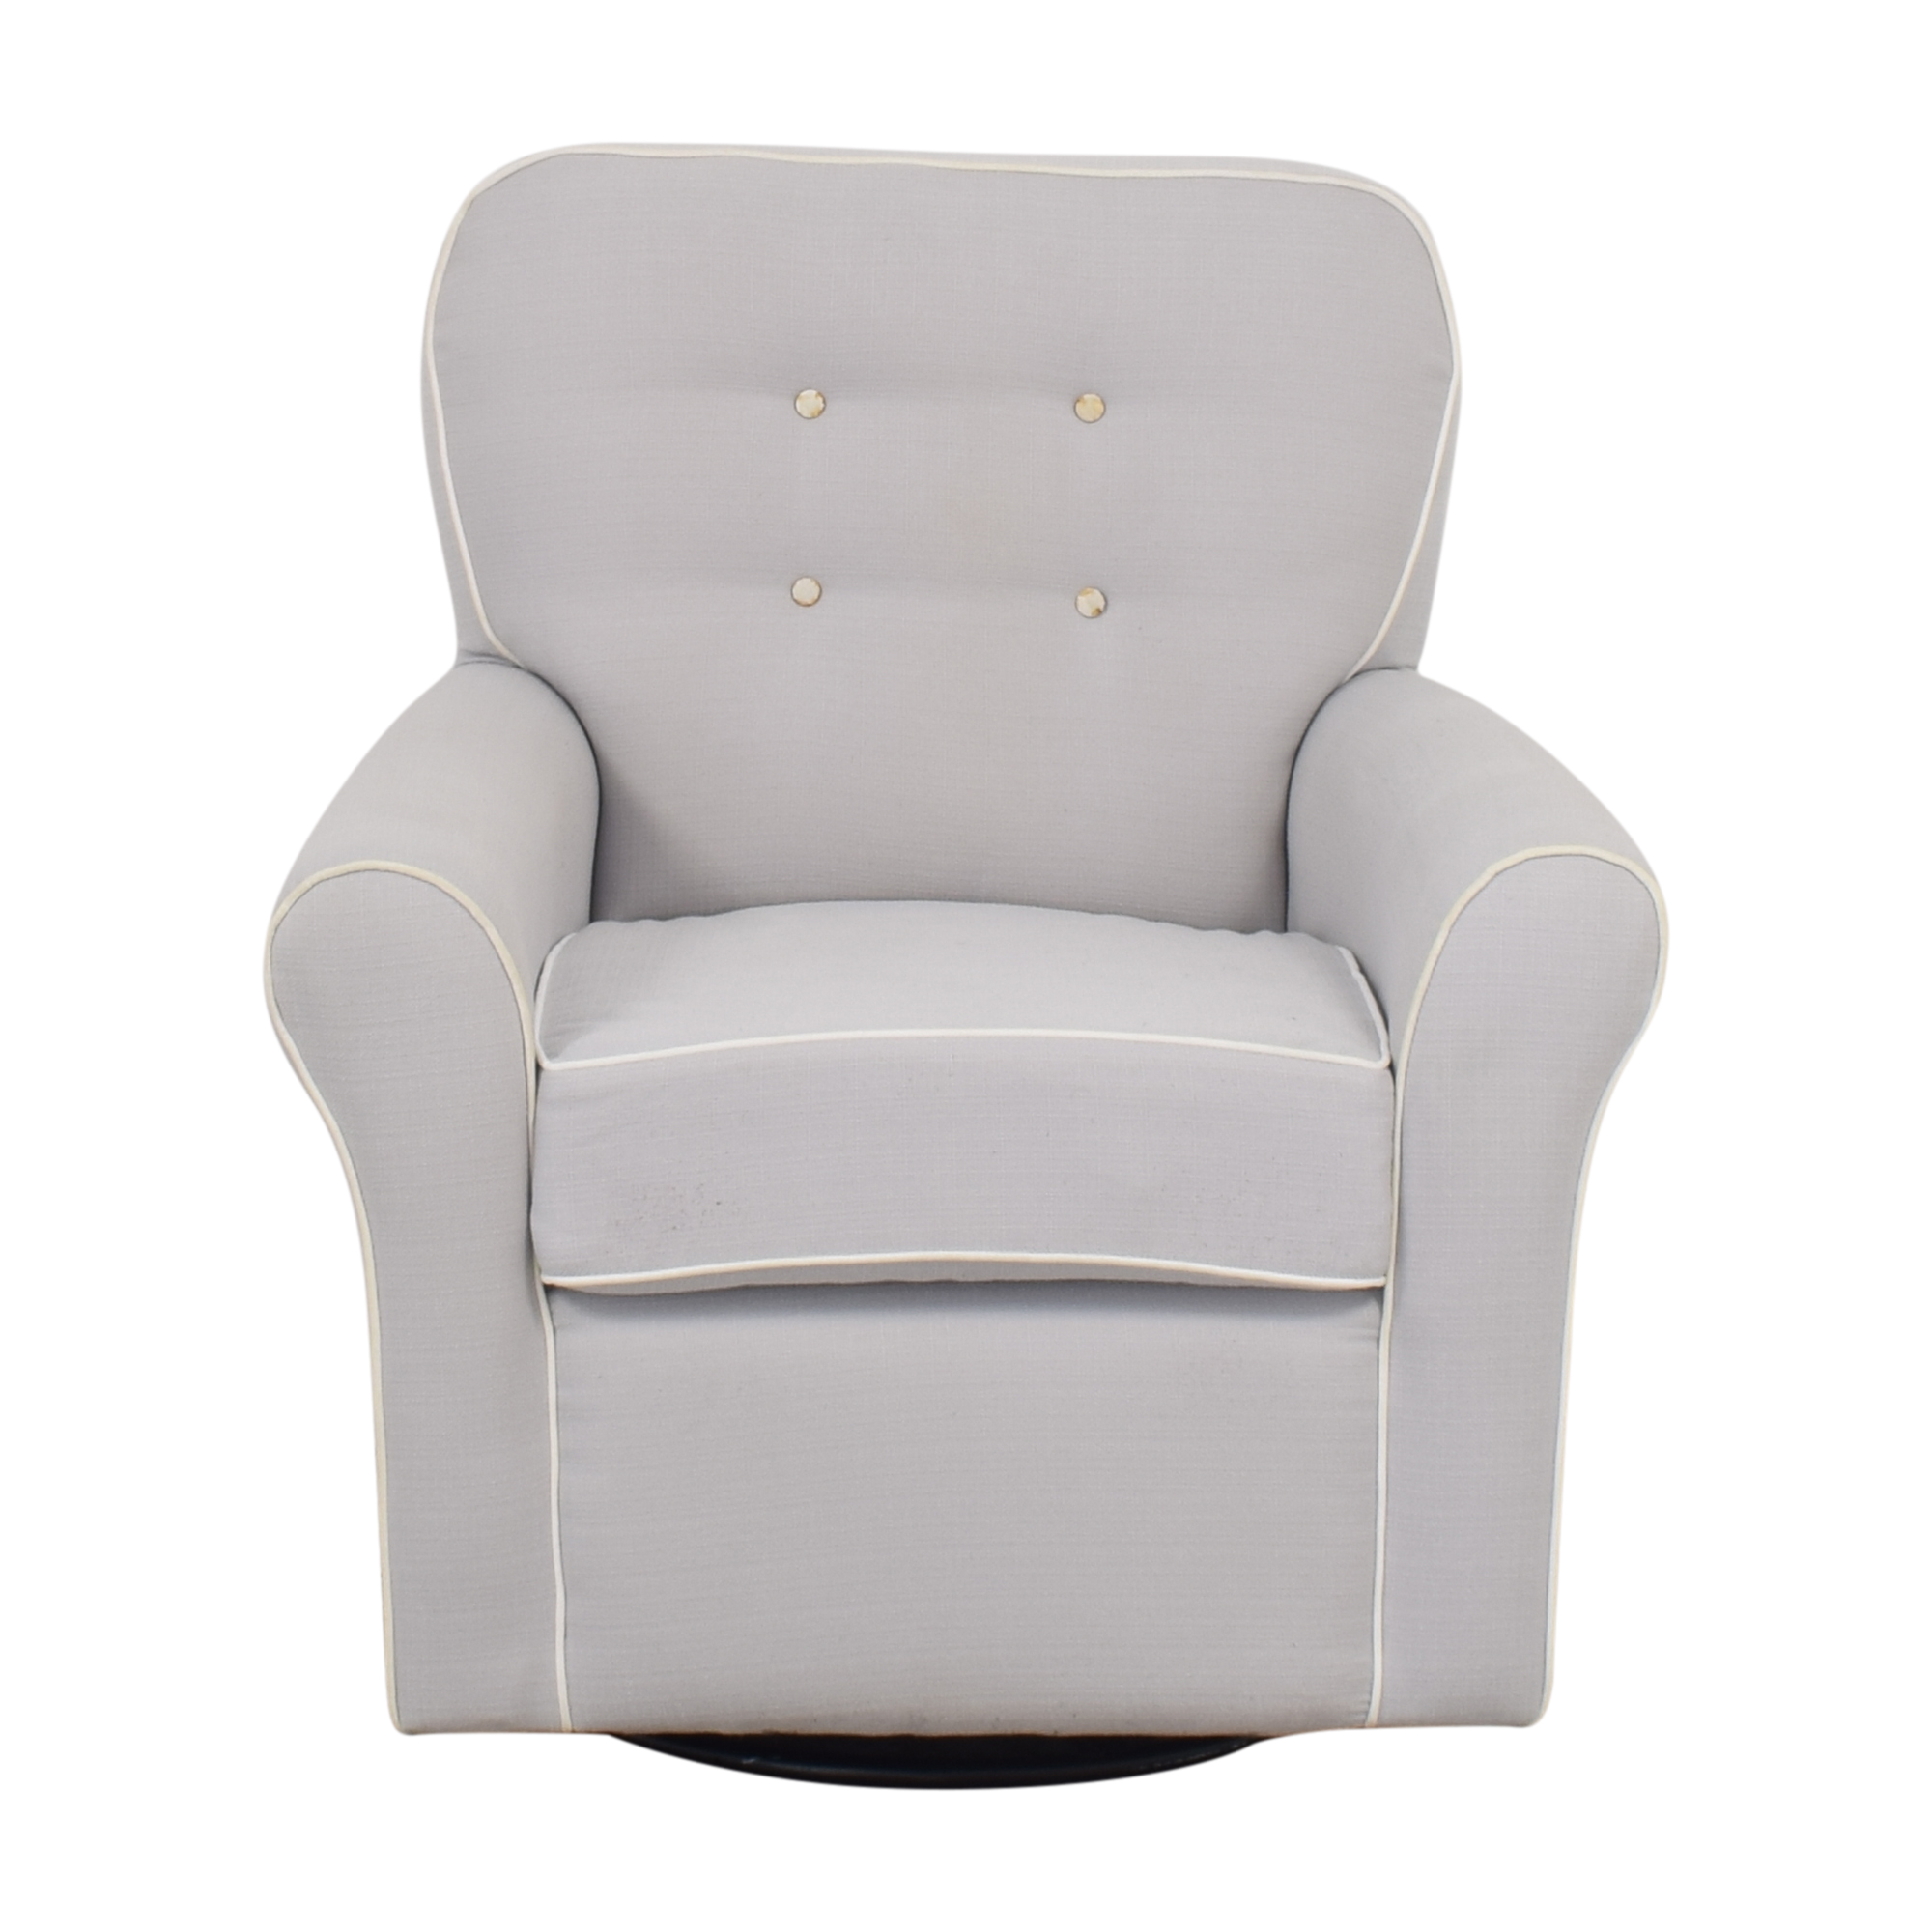 Tufted Glider Swivel Rocker Chair dimensions